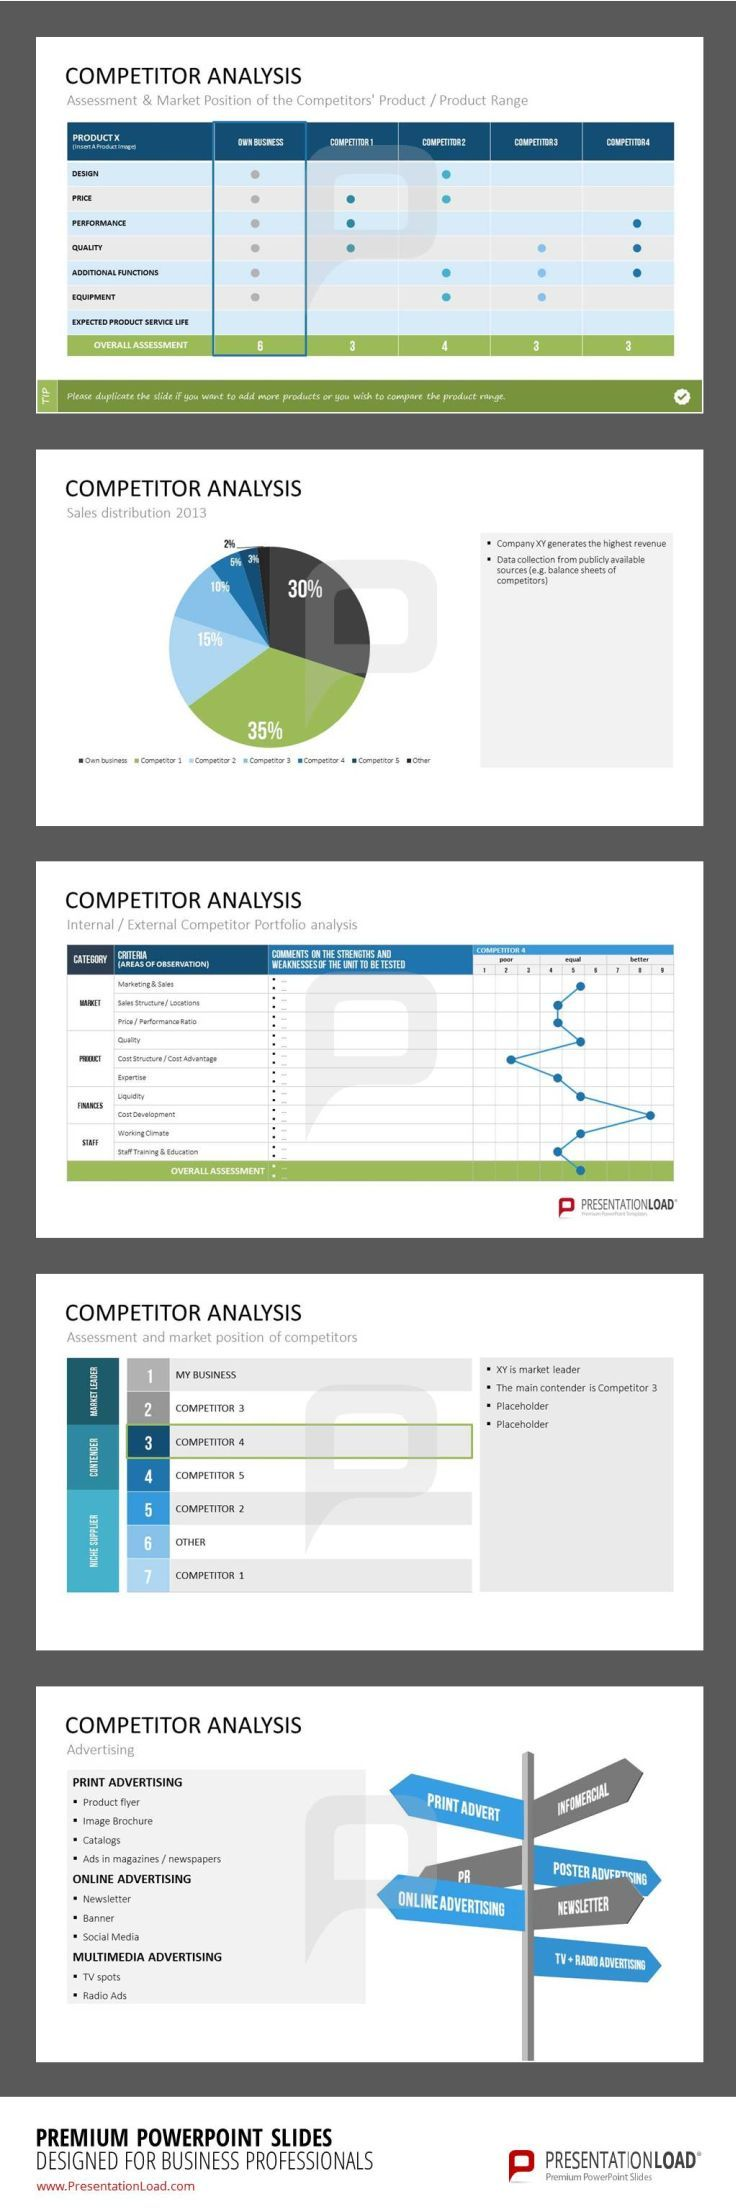 Best 25+ Competitor analysis ideas on Pinterest